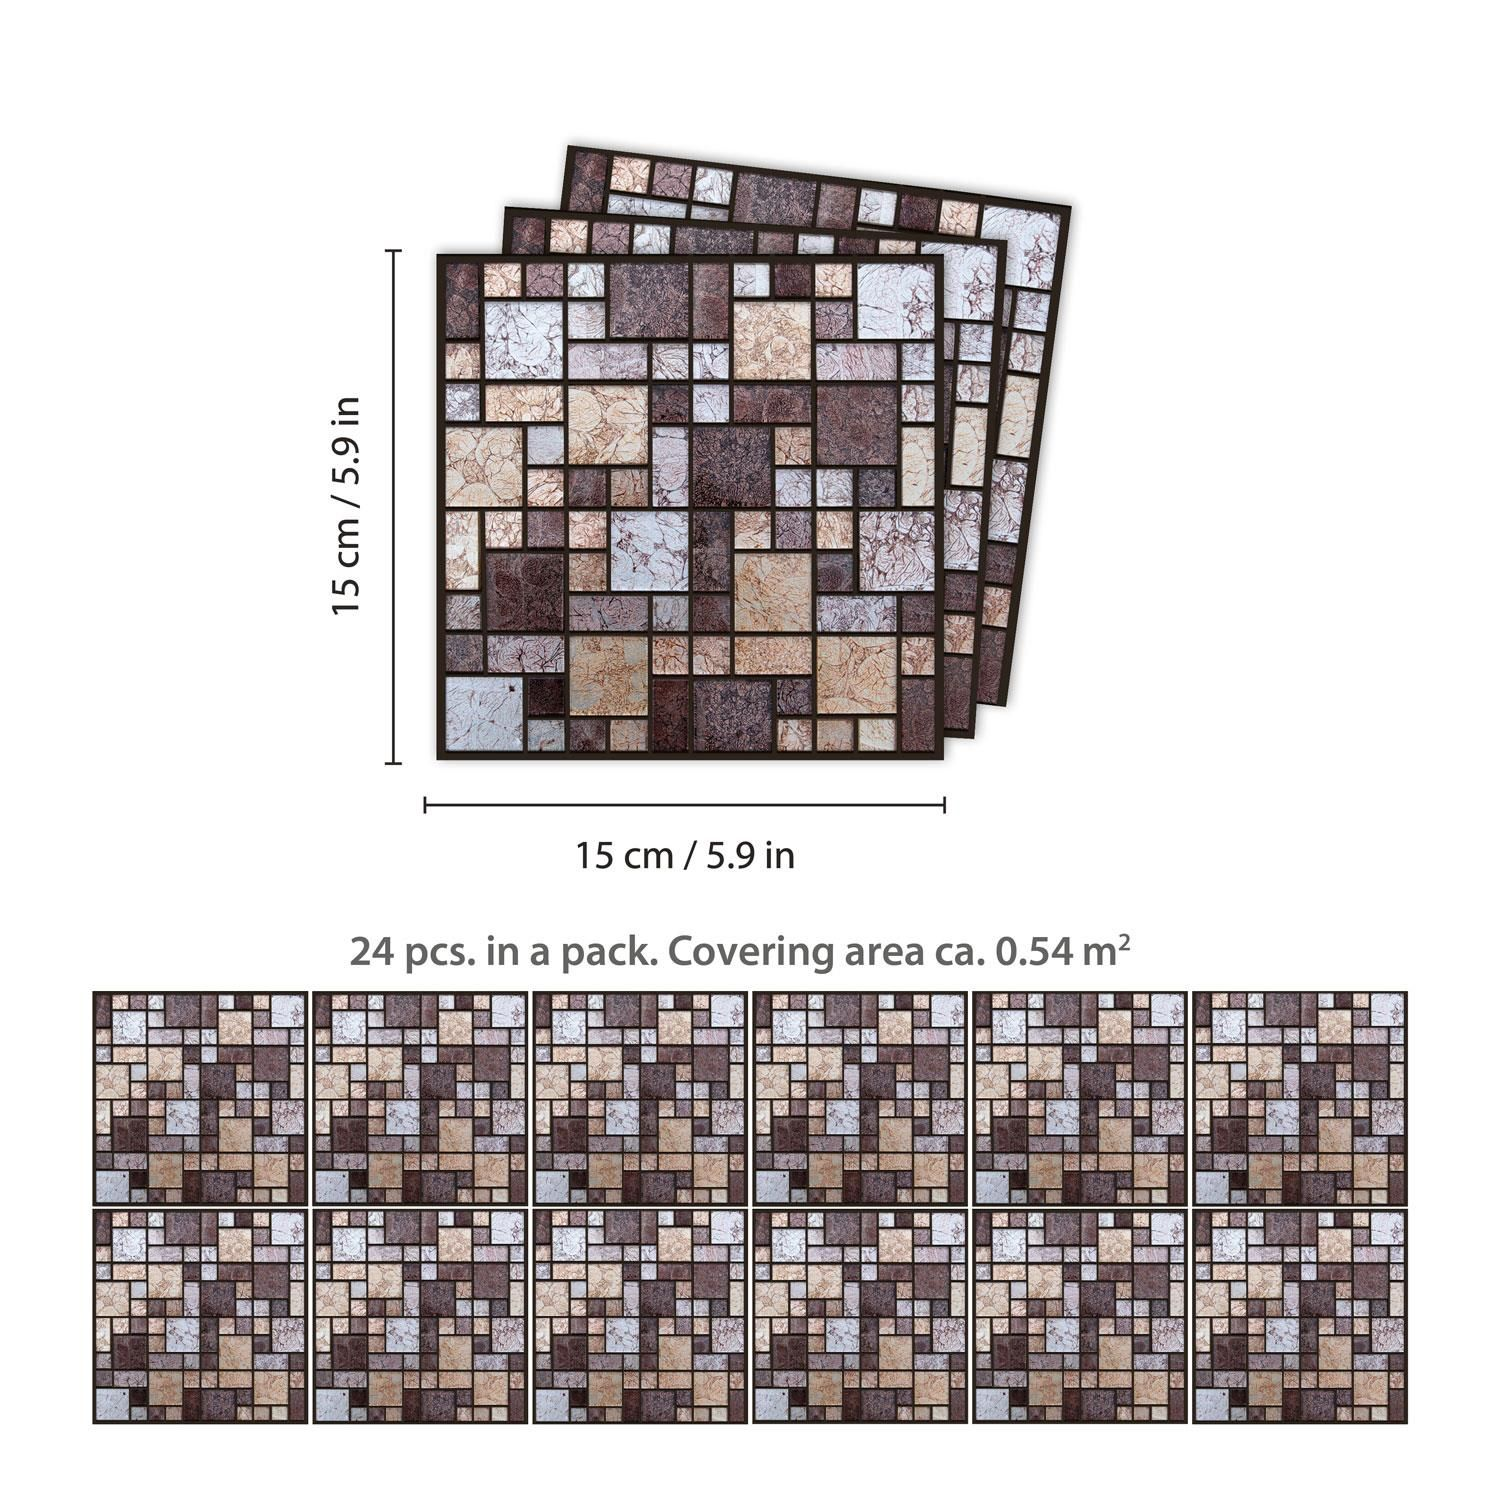 Brown and Beige Stone Mosaic Wall Tile Sticker Set - 15cm (6inch) - 24pcs one pack Self Adhesive DIY Wall Sticker